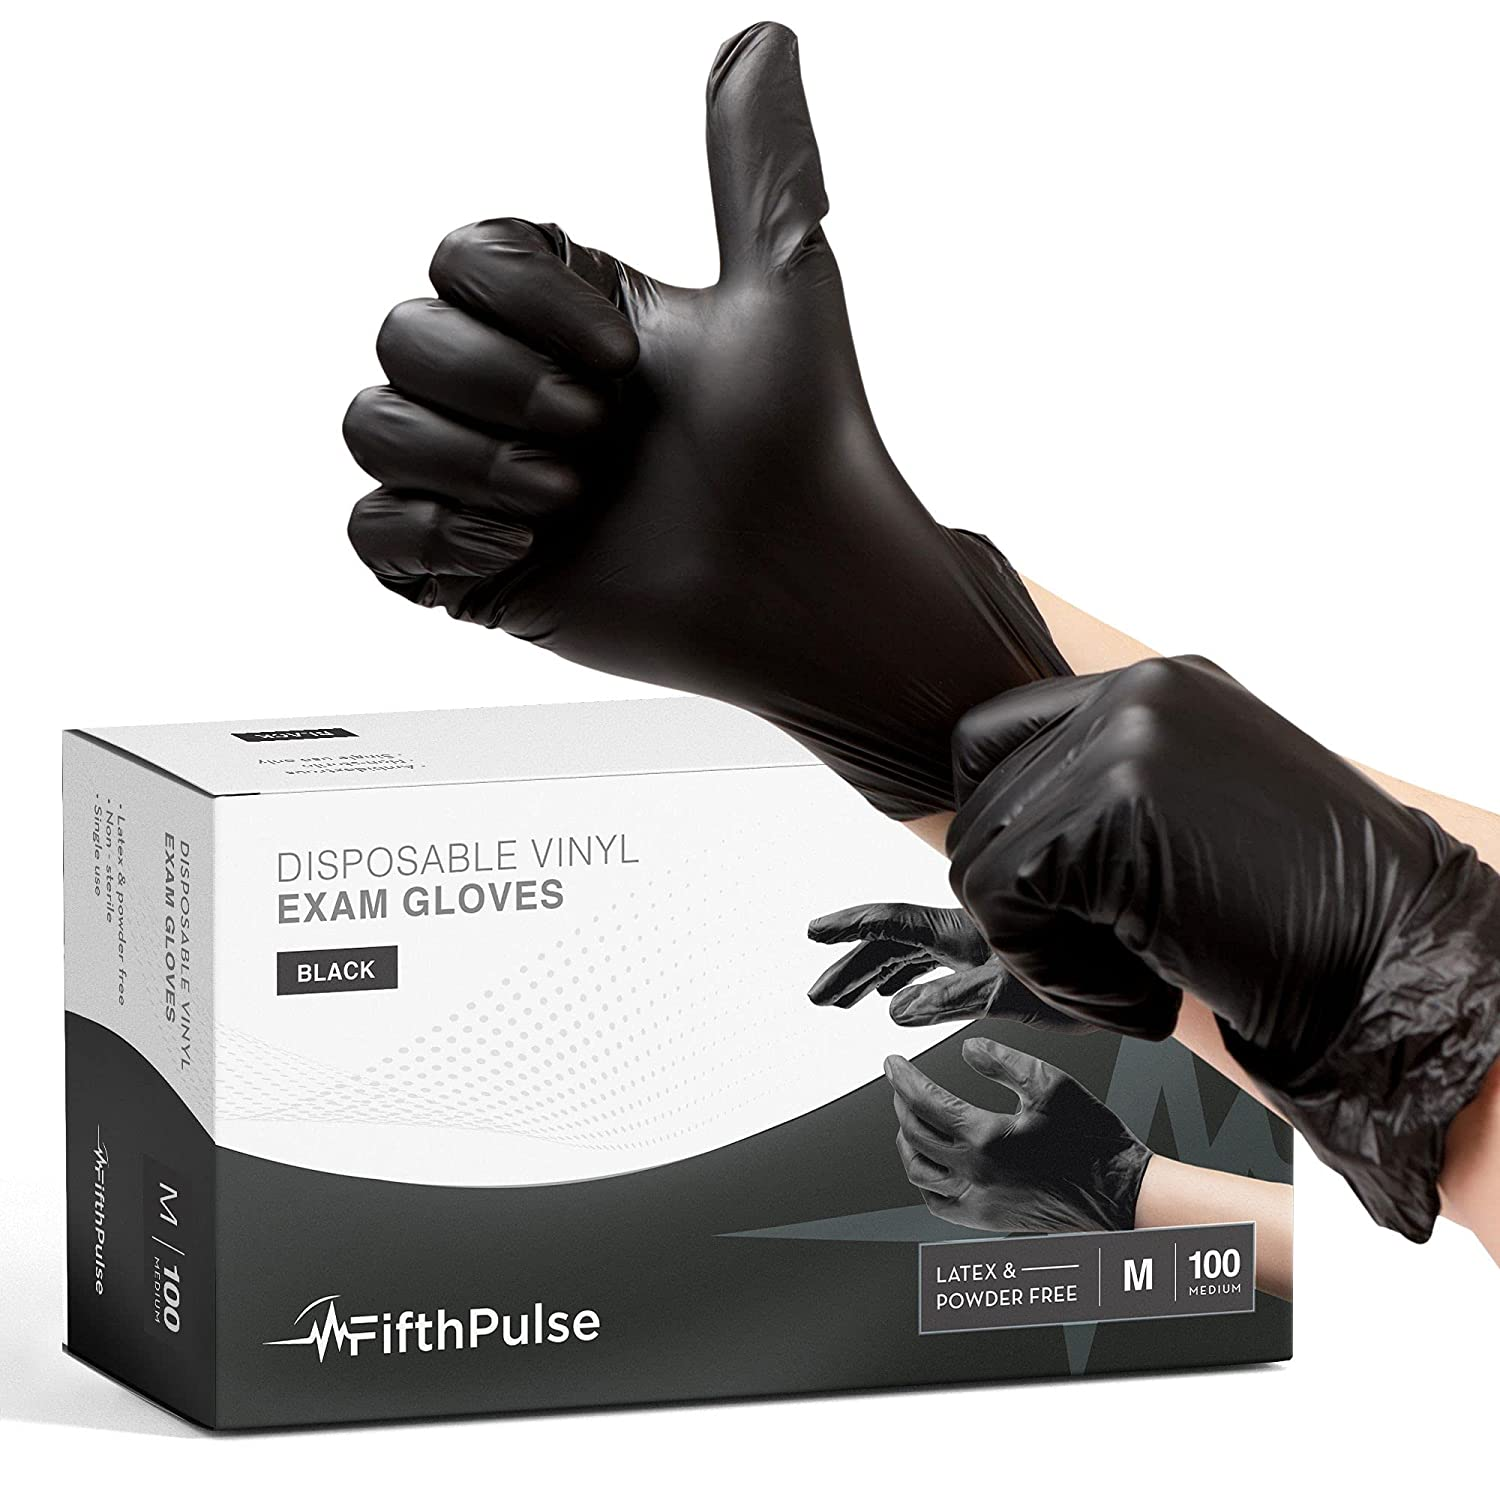 FifthPulse Black Vinyl Disposable Gloves Medium 100 Pack - Latex Free, Powder Free Medical Exam Gloves - Surgical, Home, Cleaning, and Food Gloves - 3 Mil Thickness